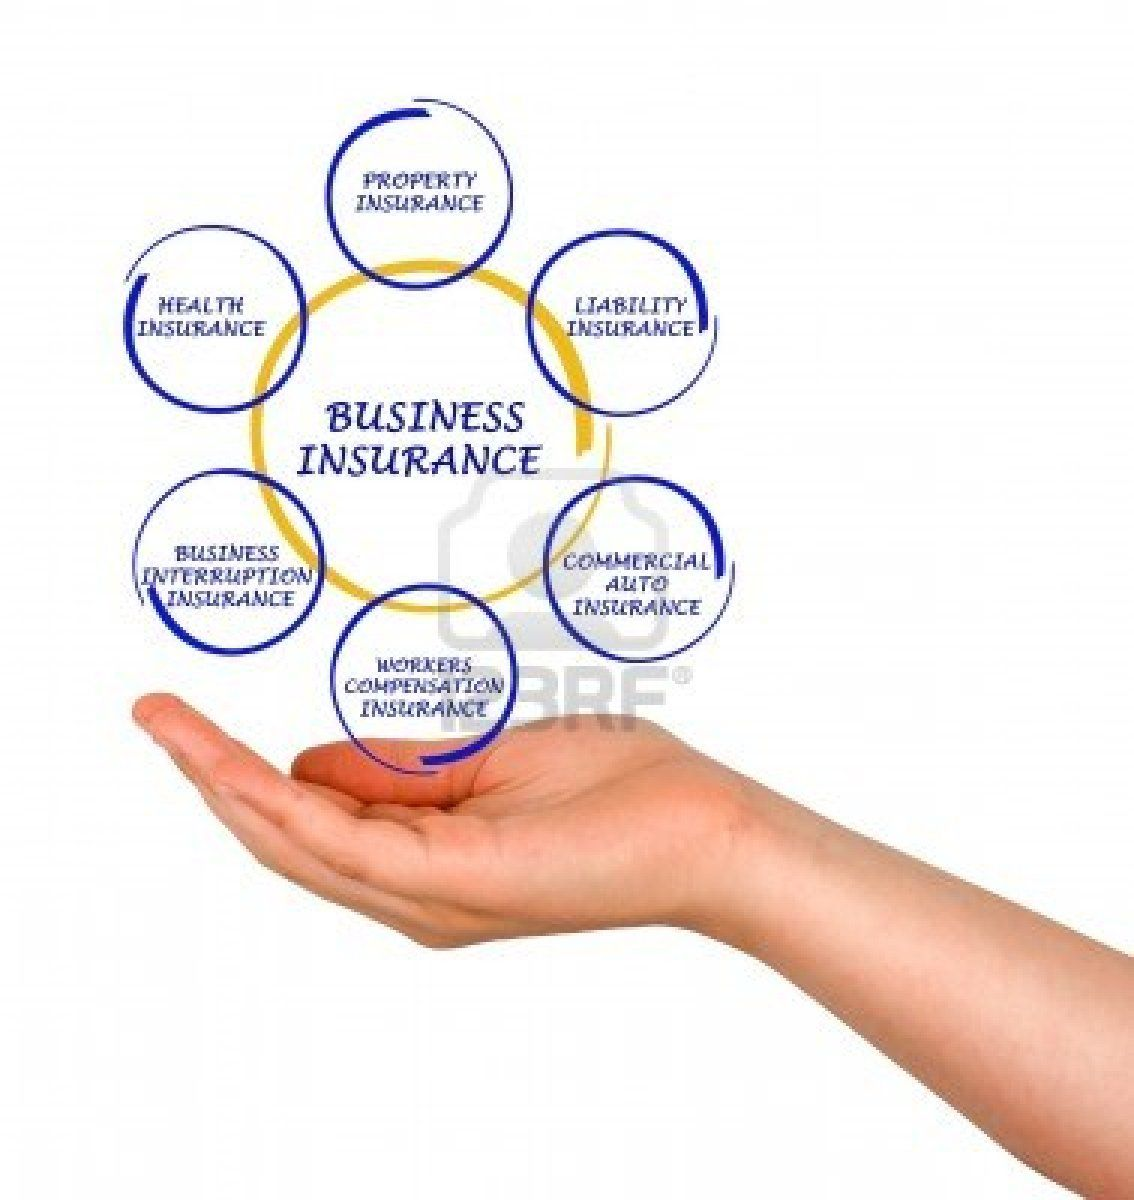 Stock Photo Insurance agency, Business, Diagram